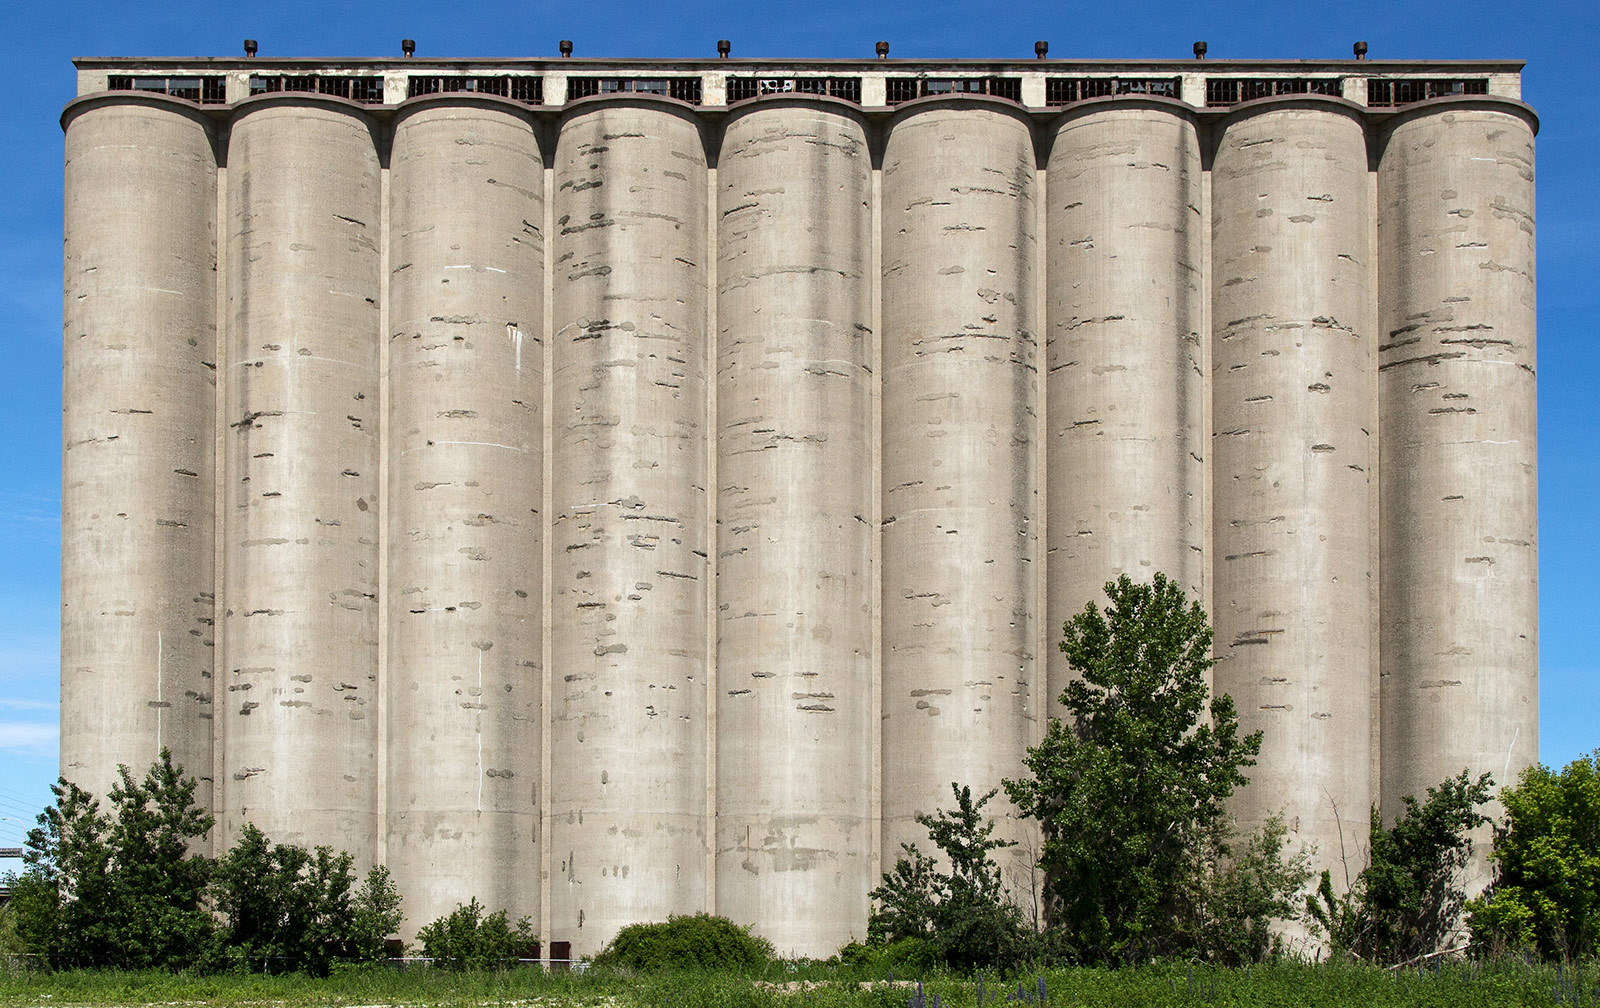 20140616. What's to be done with the 2004 heritage-listed Victory Soya Mills silos?